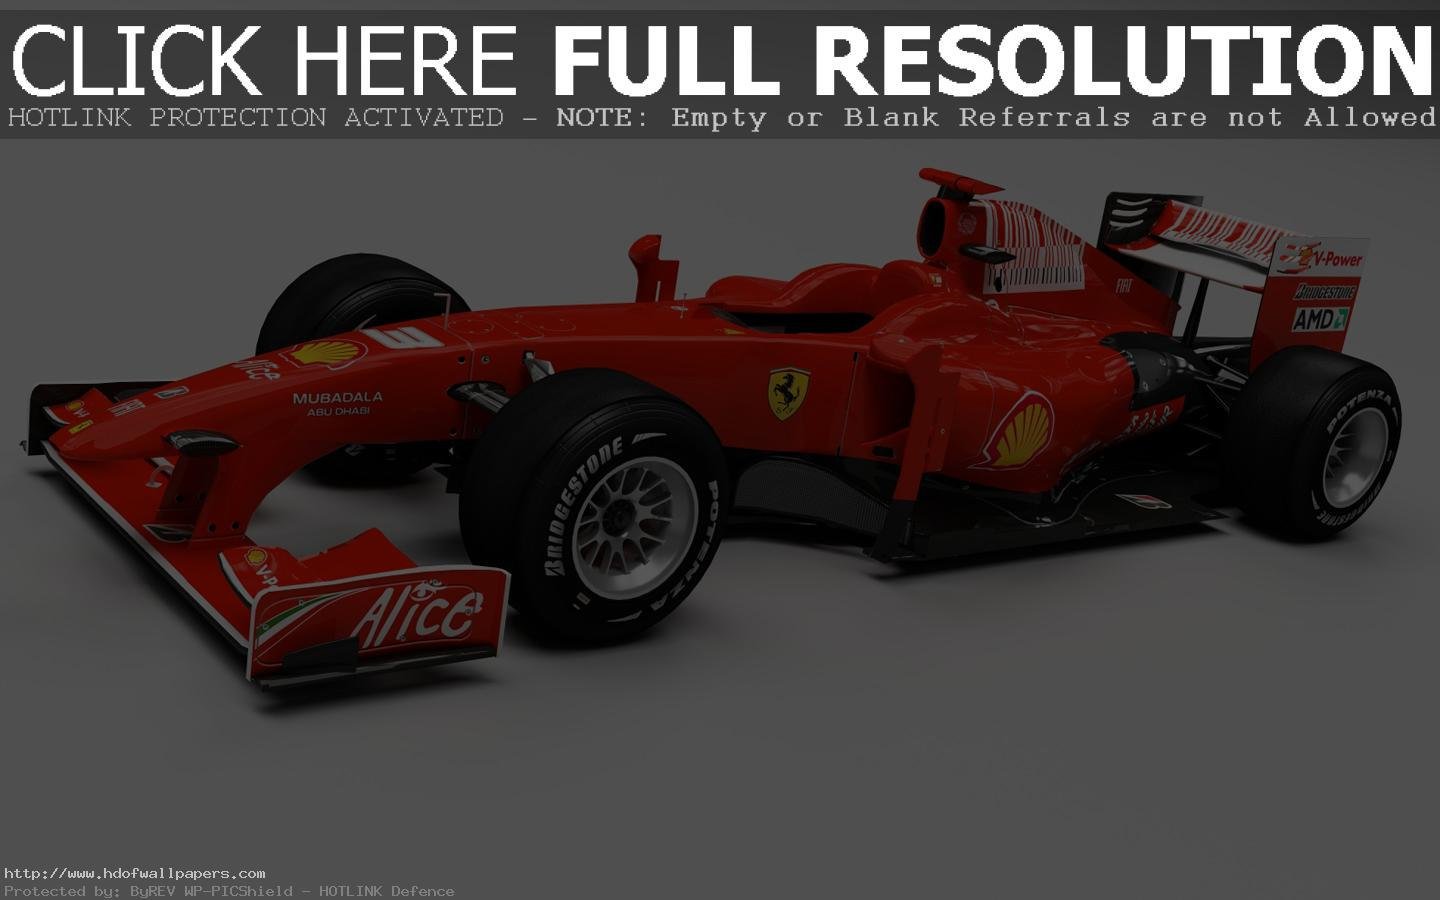 Ferrari F1 Race Car Hd #4370) wallpaper – HD of Wallpaper